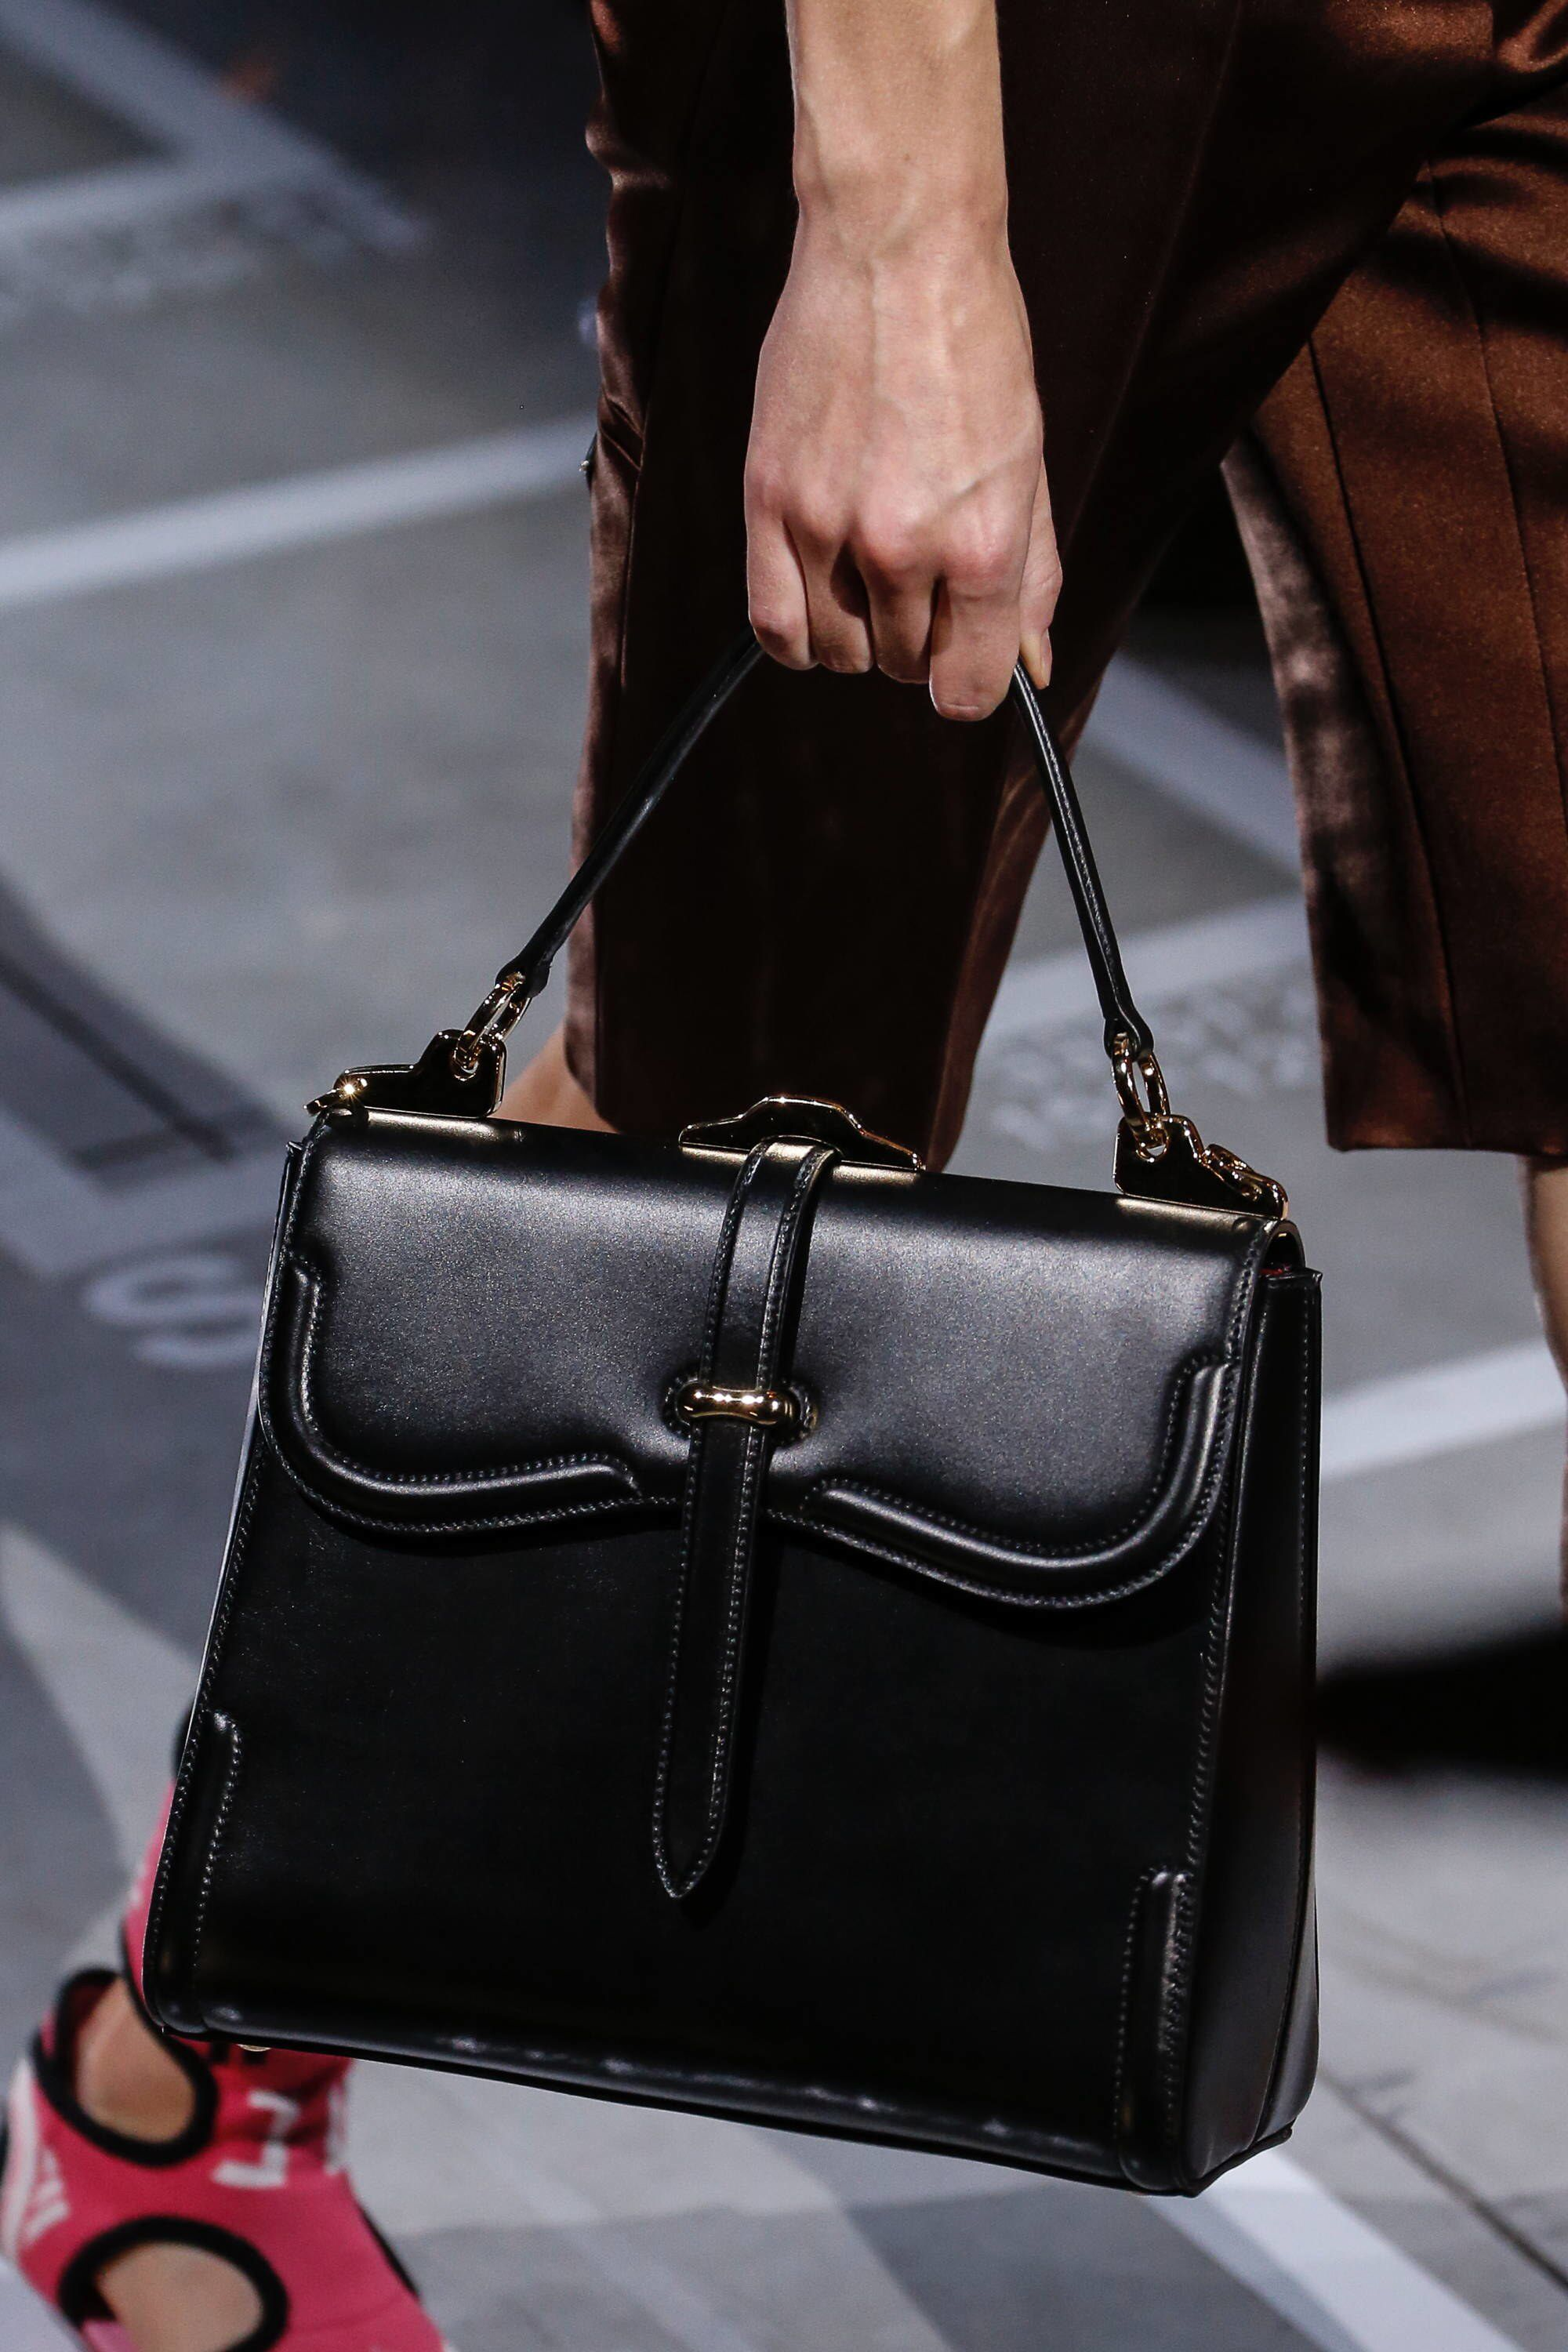 862ac8d48 Prada Spring 2019 Ready-to-Wear Fashion Show Details: See detail photos for Prada  Spring 2019 Ready-to-Wear collection. Look 6